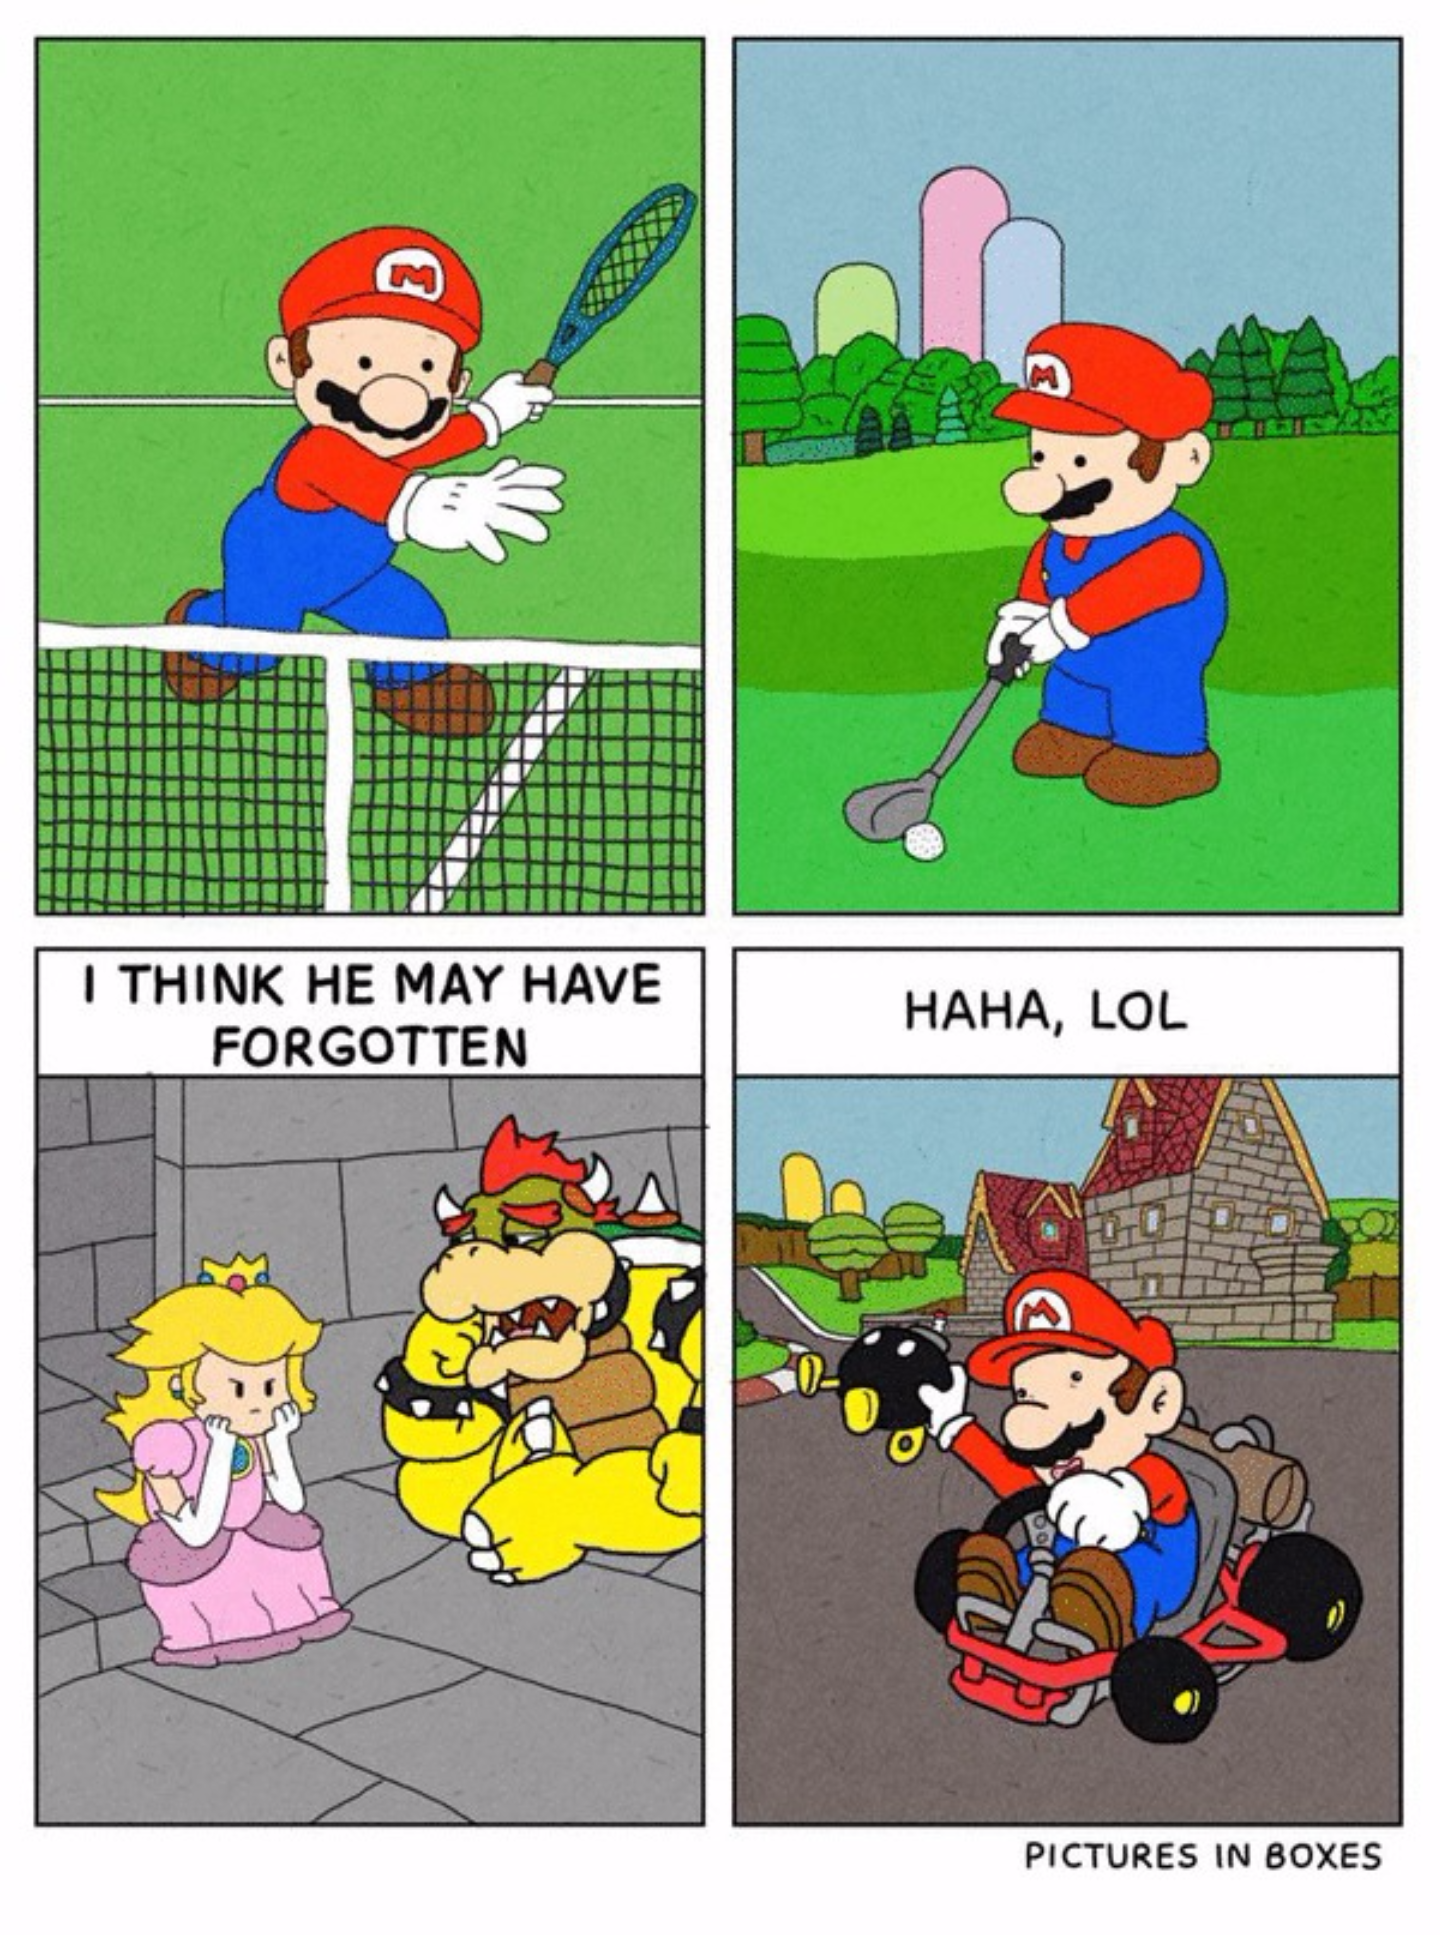 Pics photos funny princess peach pictures - Super Mario Is Sick Of Rescuing Princess Peach So He Goes On To Play Some Tennis Golf And Ride Some Go Karts Comic By Pictures In Boxes